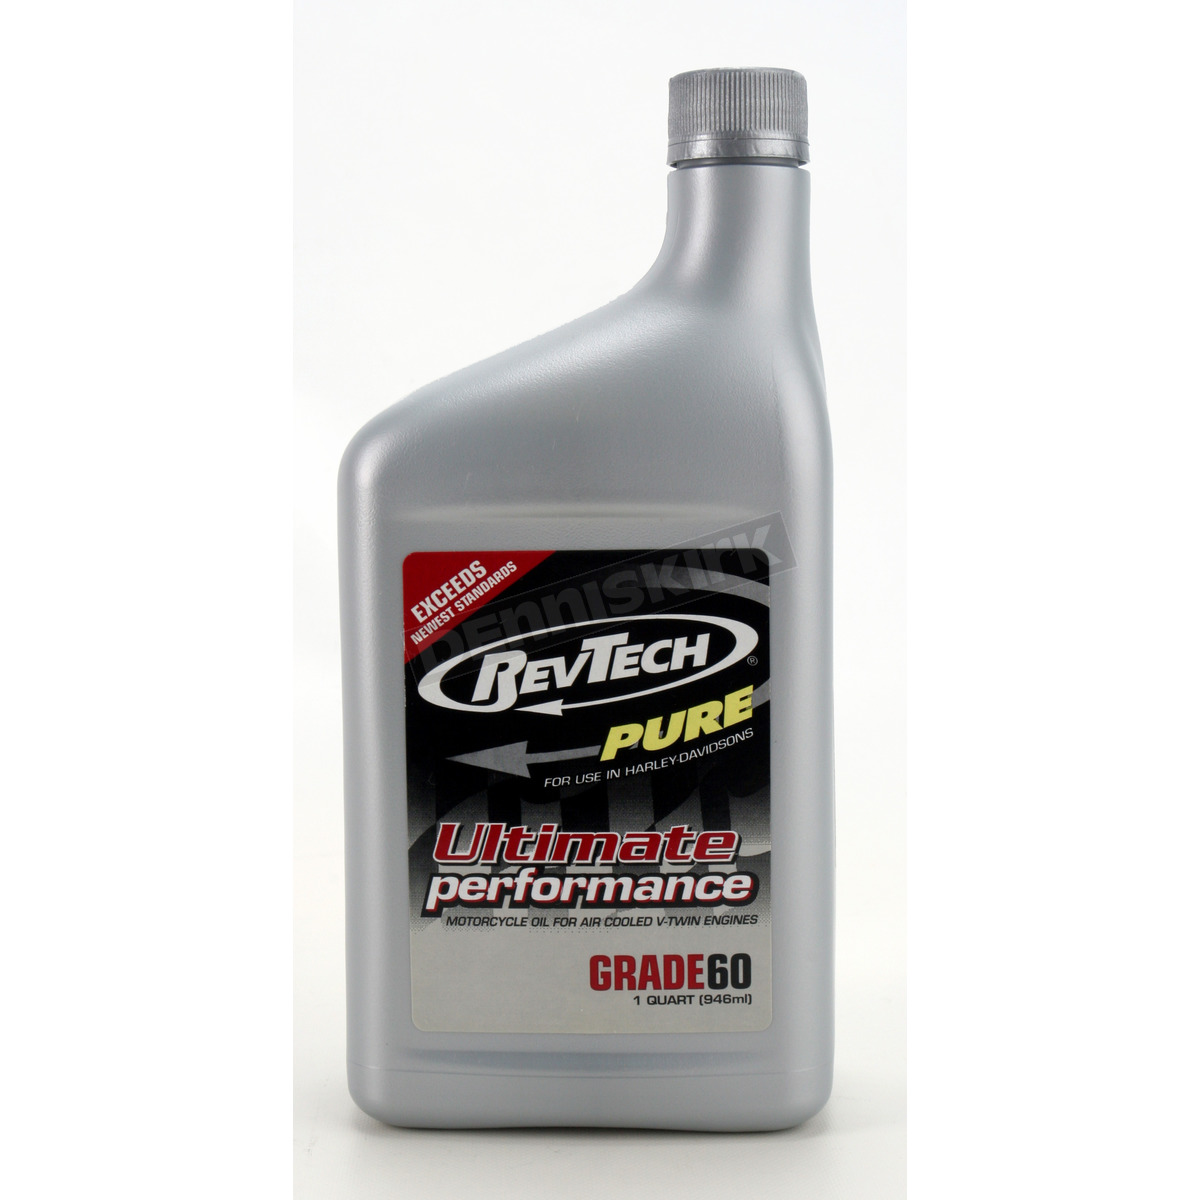 Revtech Pure Motor Oil 35304 Harley Motorcycle Dennis